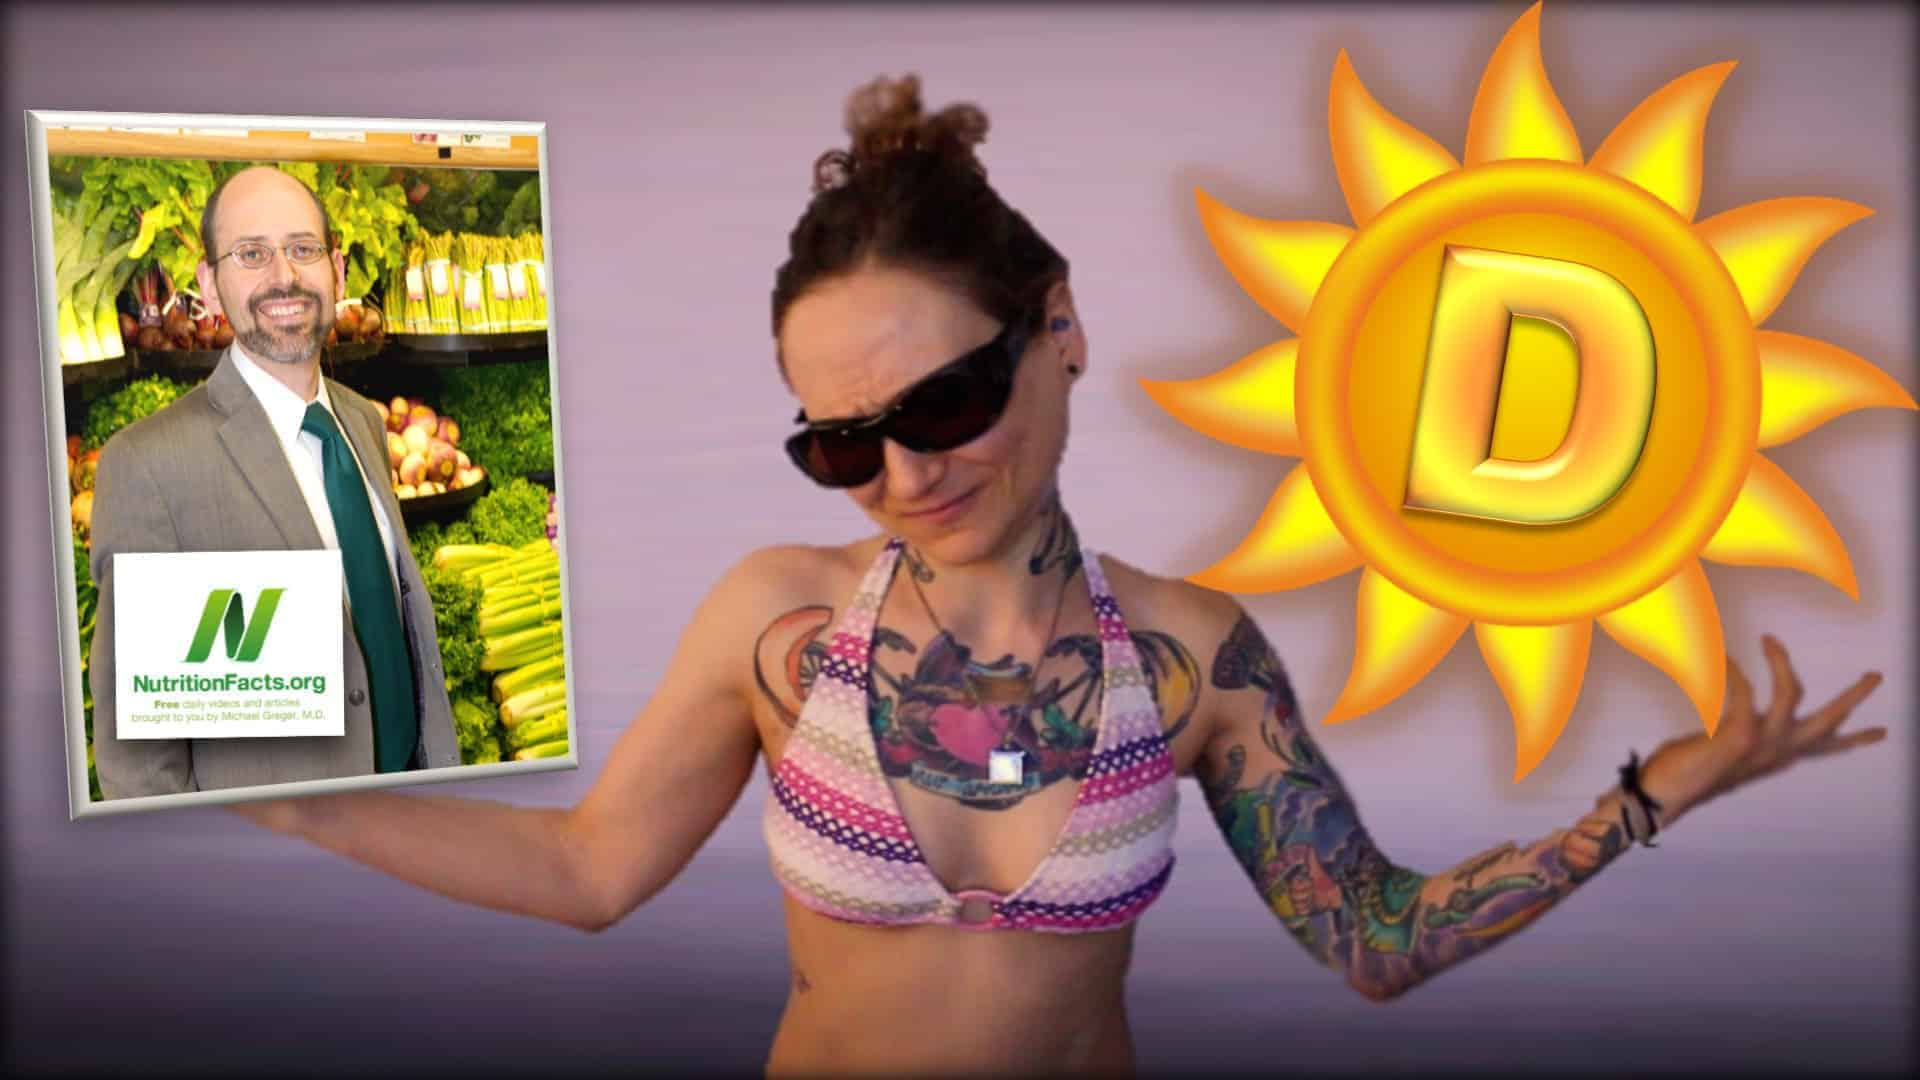 Dr. Greger of NutritionFacts.org is seen as an inset photograph on the left. Next to this image Emily Moran Barwick of Bite Size Vegan can be seen in a bikini top with dark sunglasses on. On the right is a cartoon sun with a letter D displayed in its center.